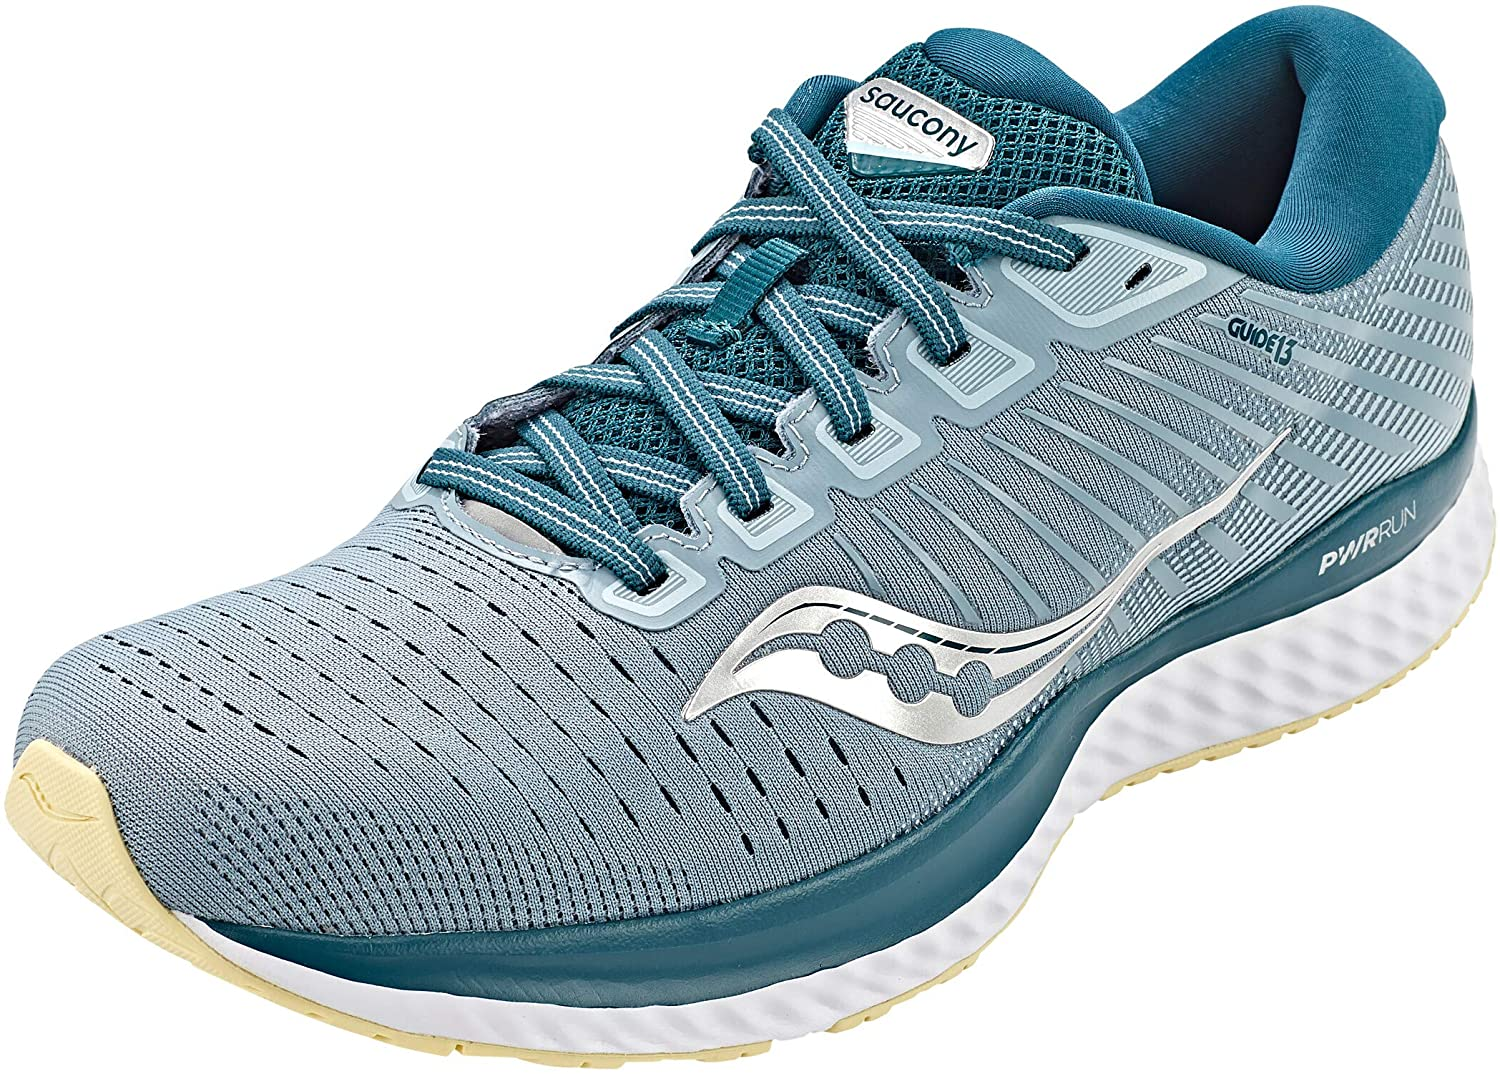 Saucony Men's Guide 13 Running Shoe in Mineral Deep Teal Side Angle View